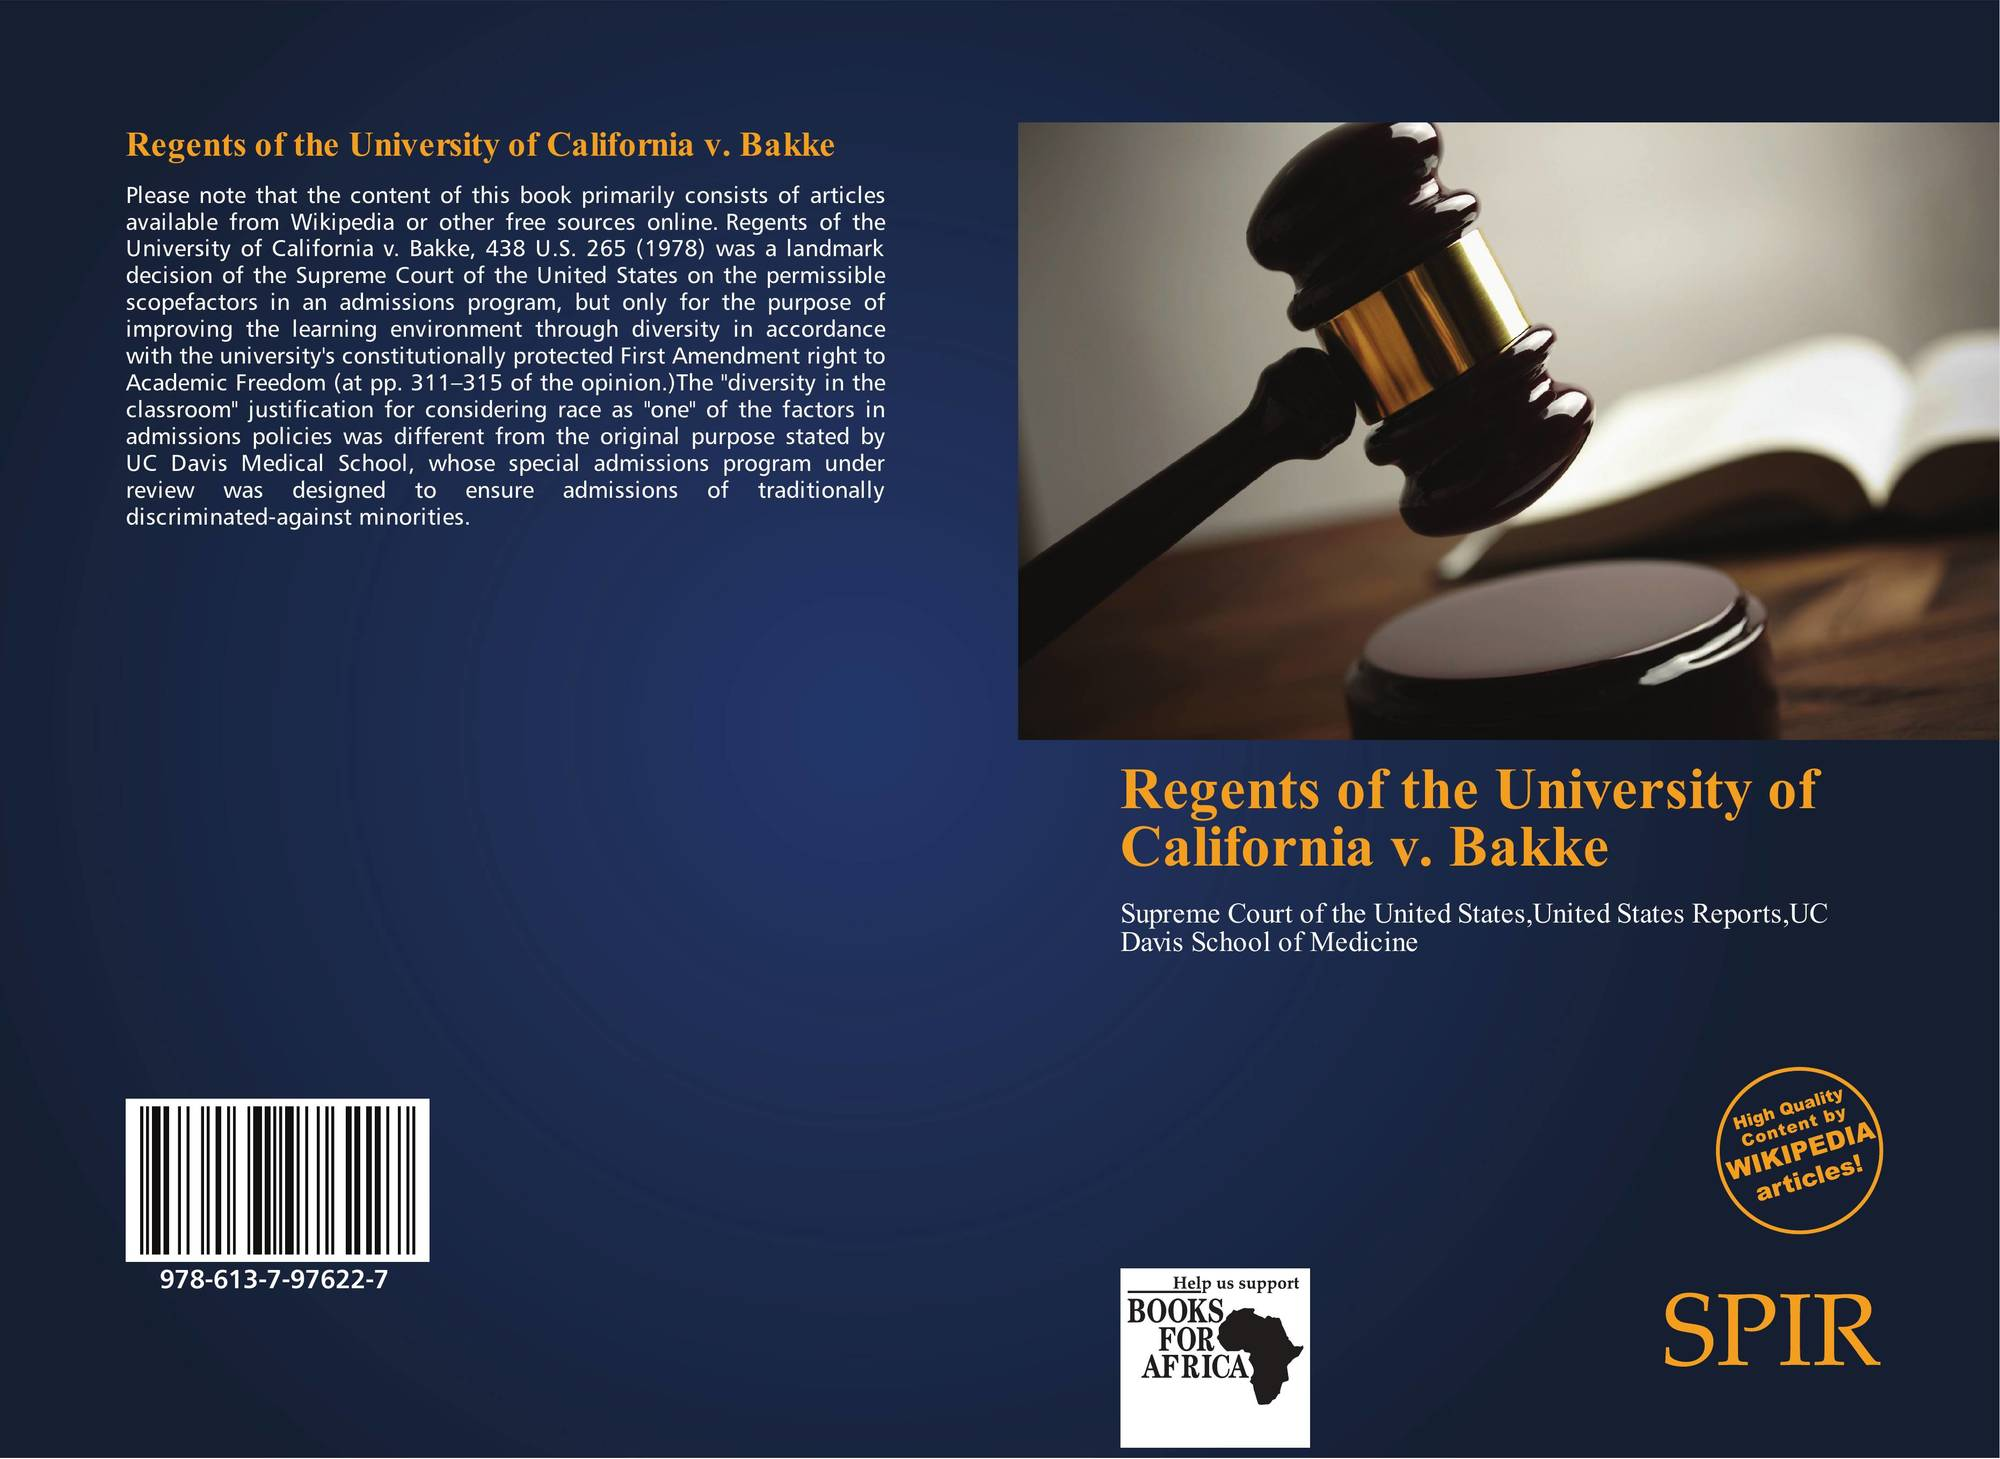 an analysis of the supreme court case in university of california versus bakke The supreme court building: since bakke in 1978, the supreme court has slowly been limiting the types of affirmative action programs that are deemed constitutional since the case of regents of the university of california vbakke in 1978, several supreme court cases have revisited questions of affirmative action in higher education.